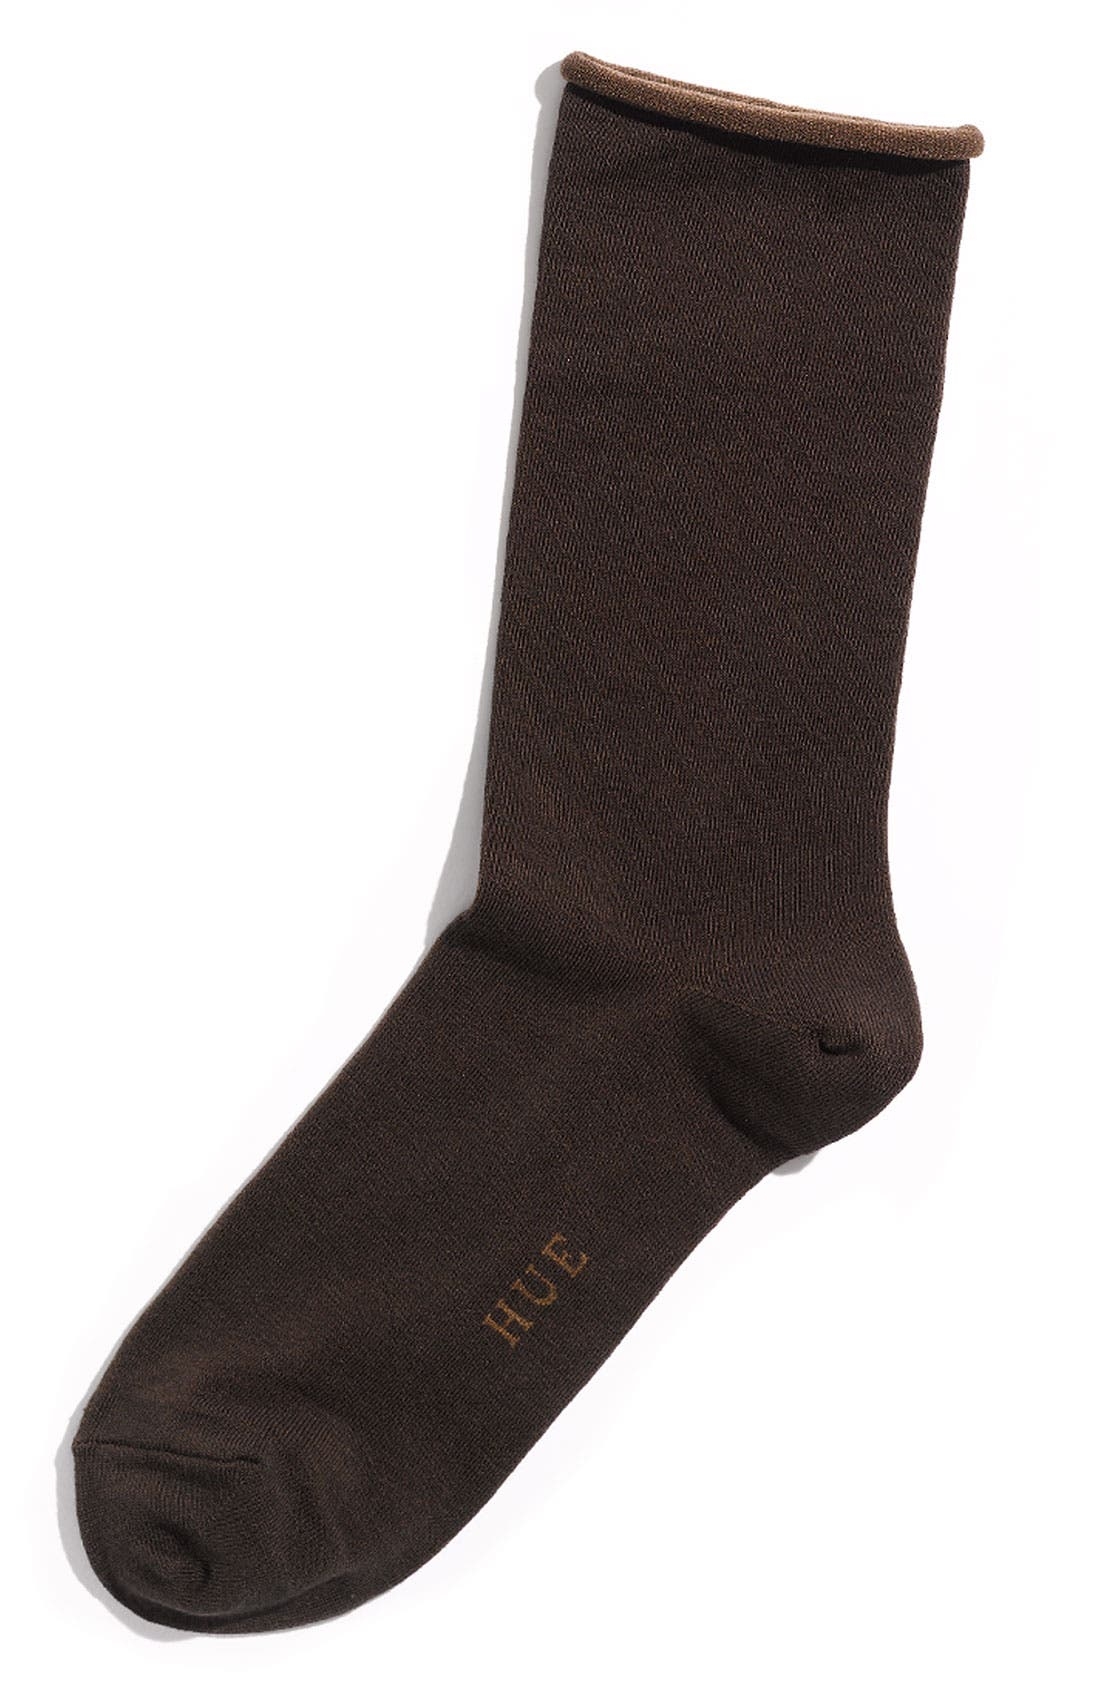 Main Image - Hue 'Jeans' Socks (3 for $18)